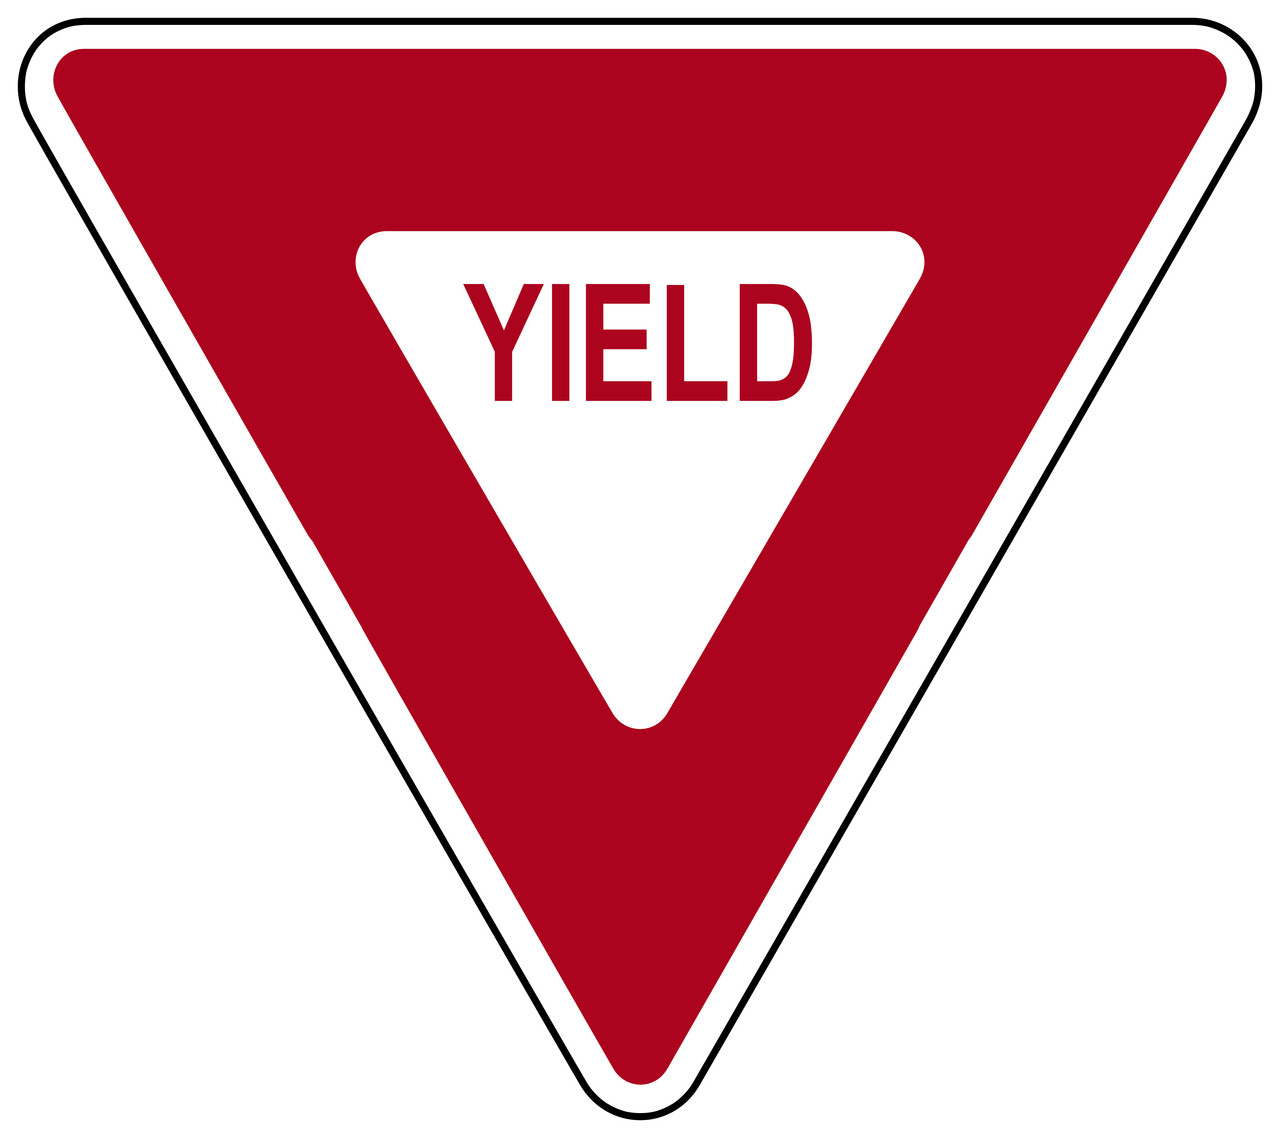 Triangle Yield Sign Red And White Yield Sign